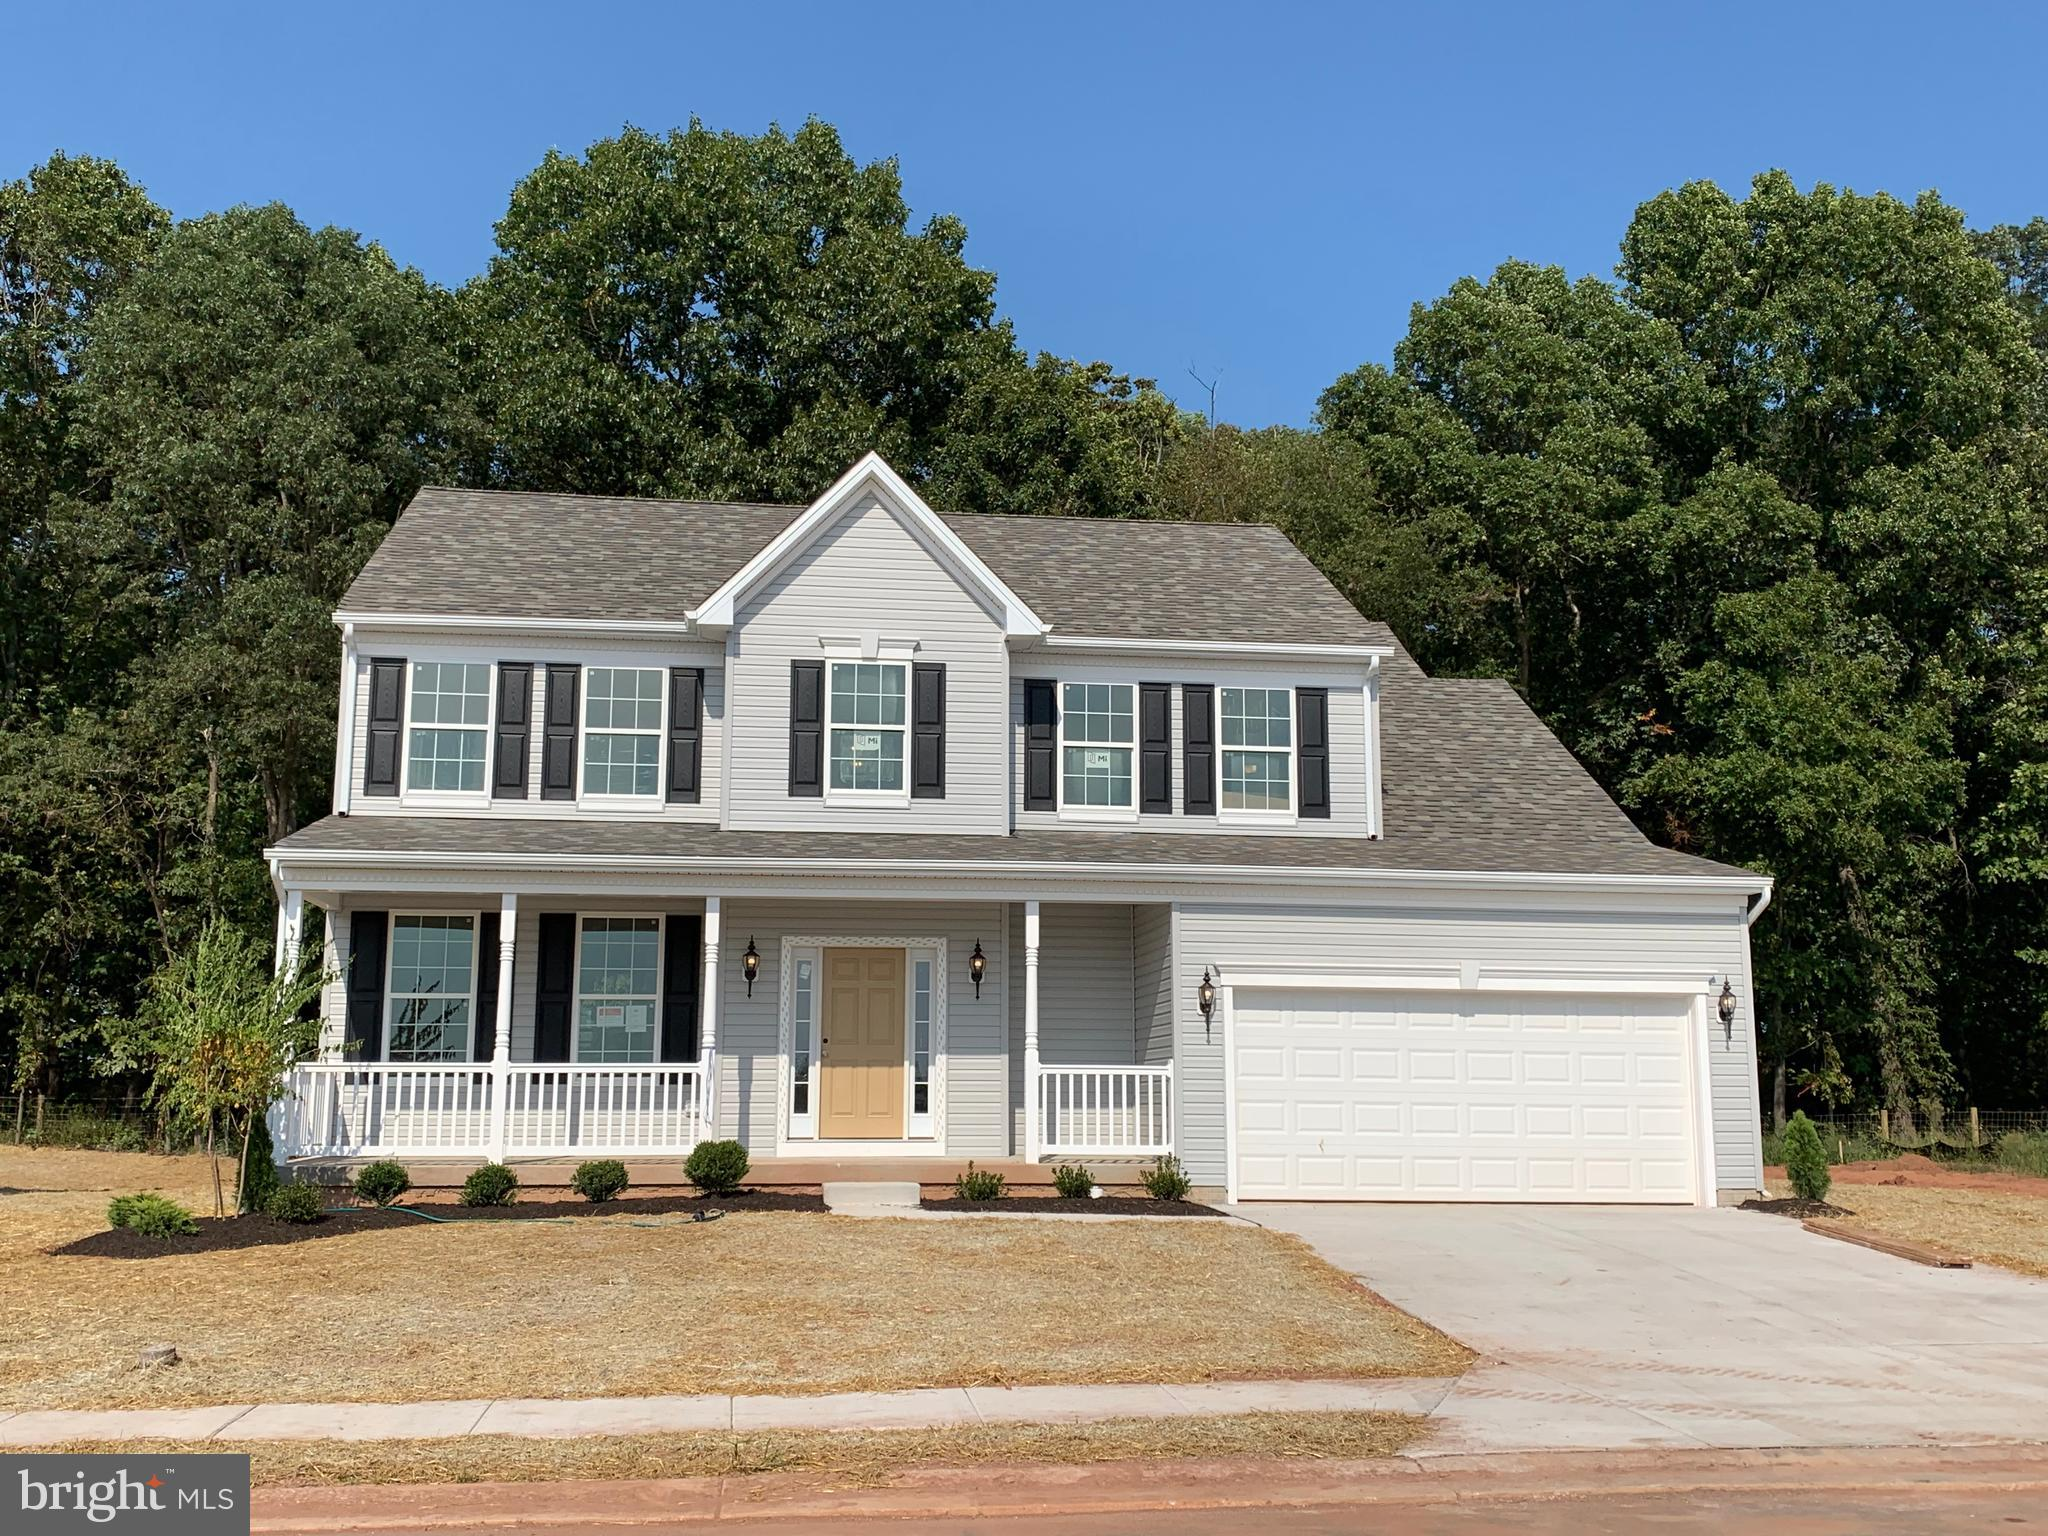 38 BOWIE MILL AVENUE, TANEYTOWN, MD 21787